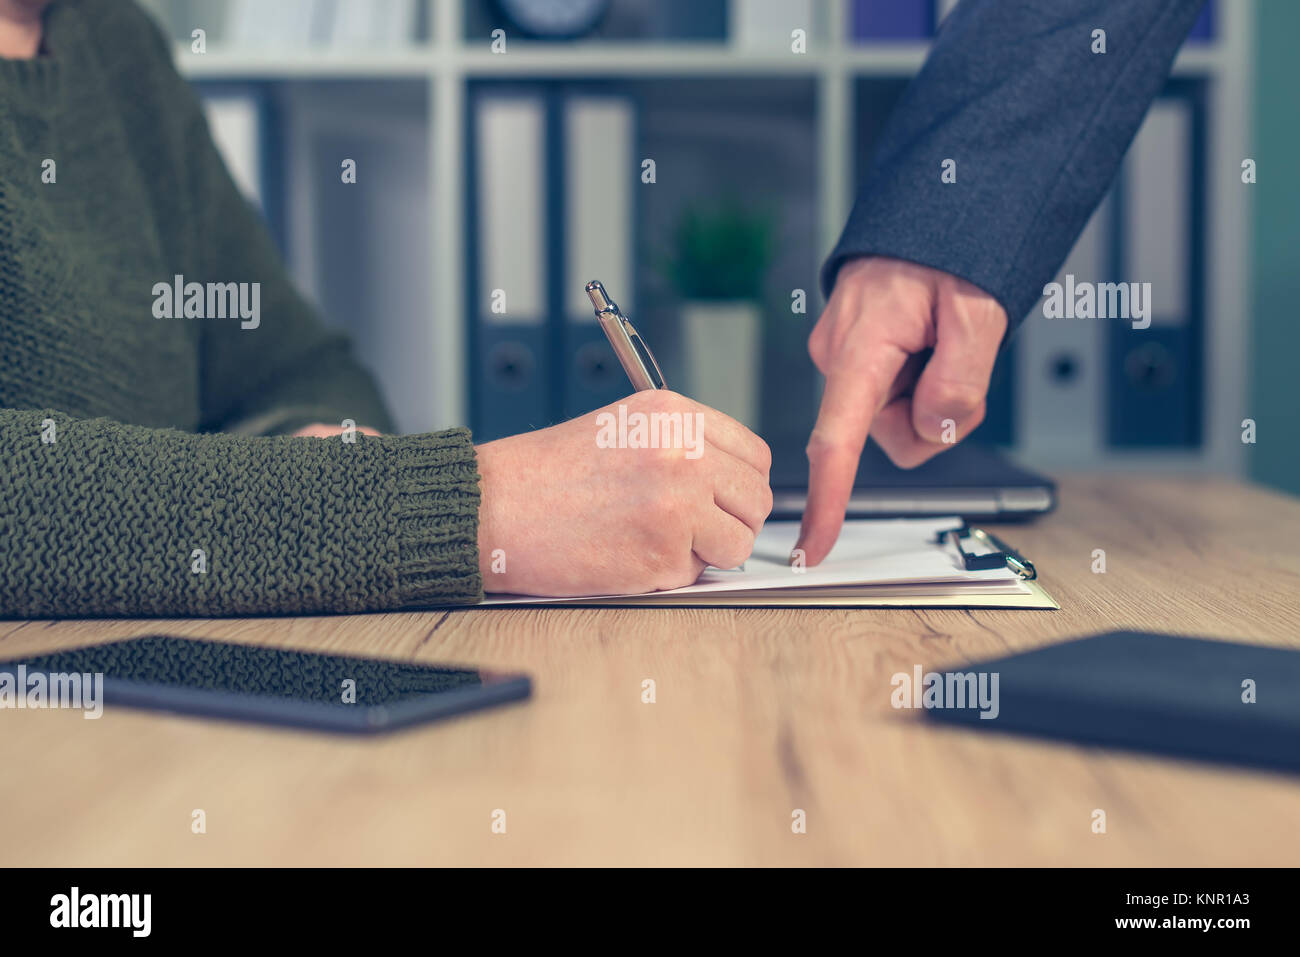 Boss giving orders and work tasks with assignment to be improved. Male hand pointing to female employee's paperwork. - Stock Image